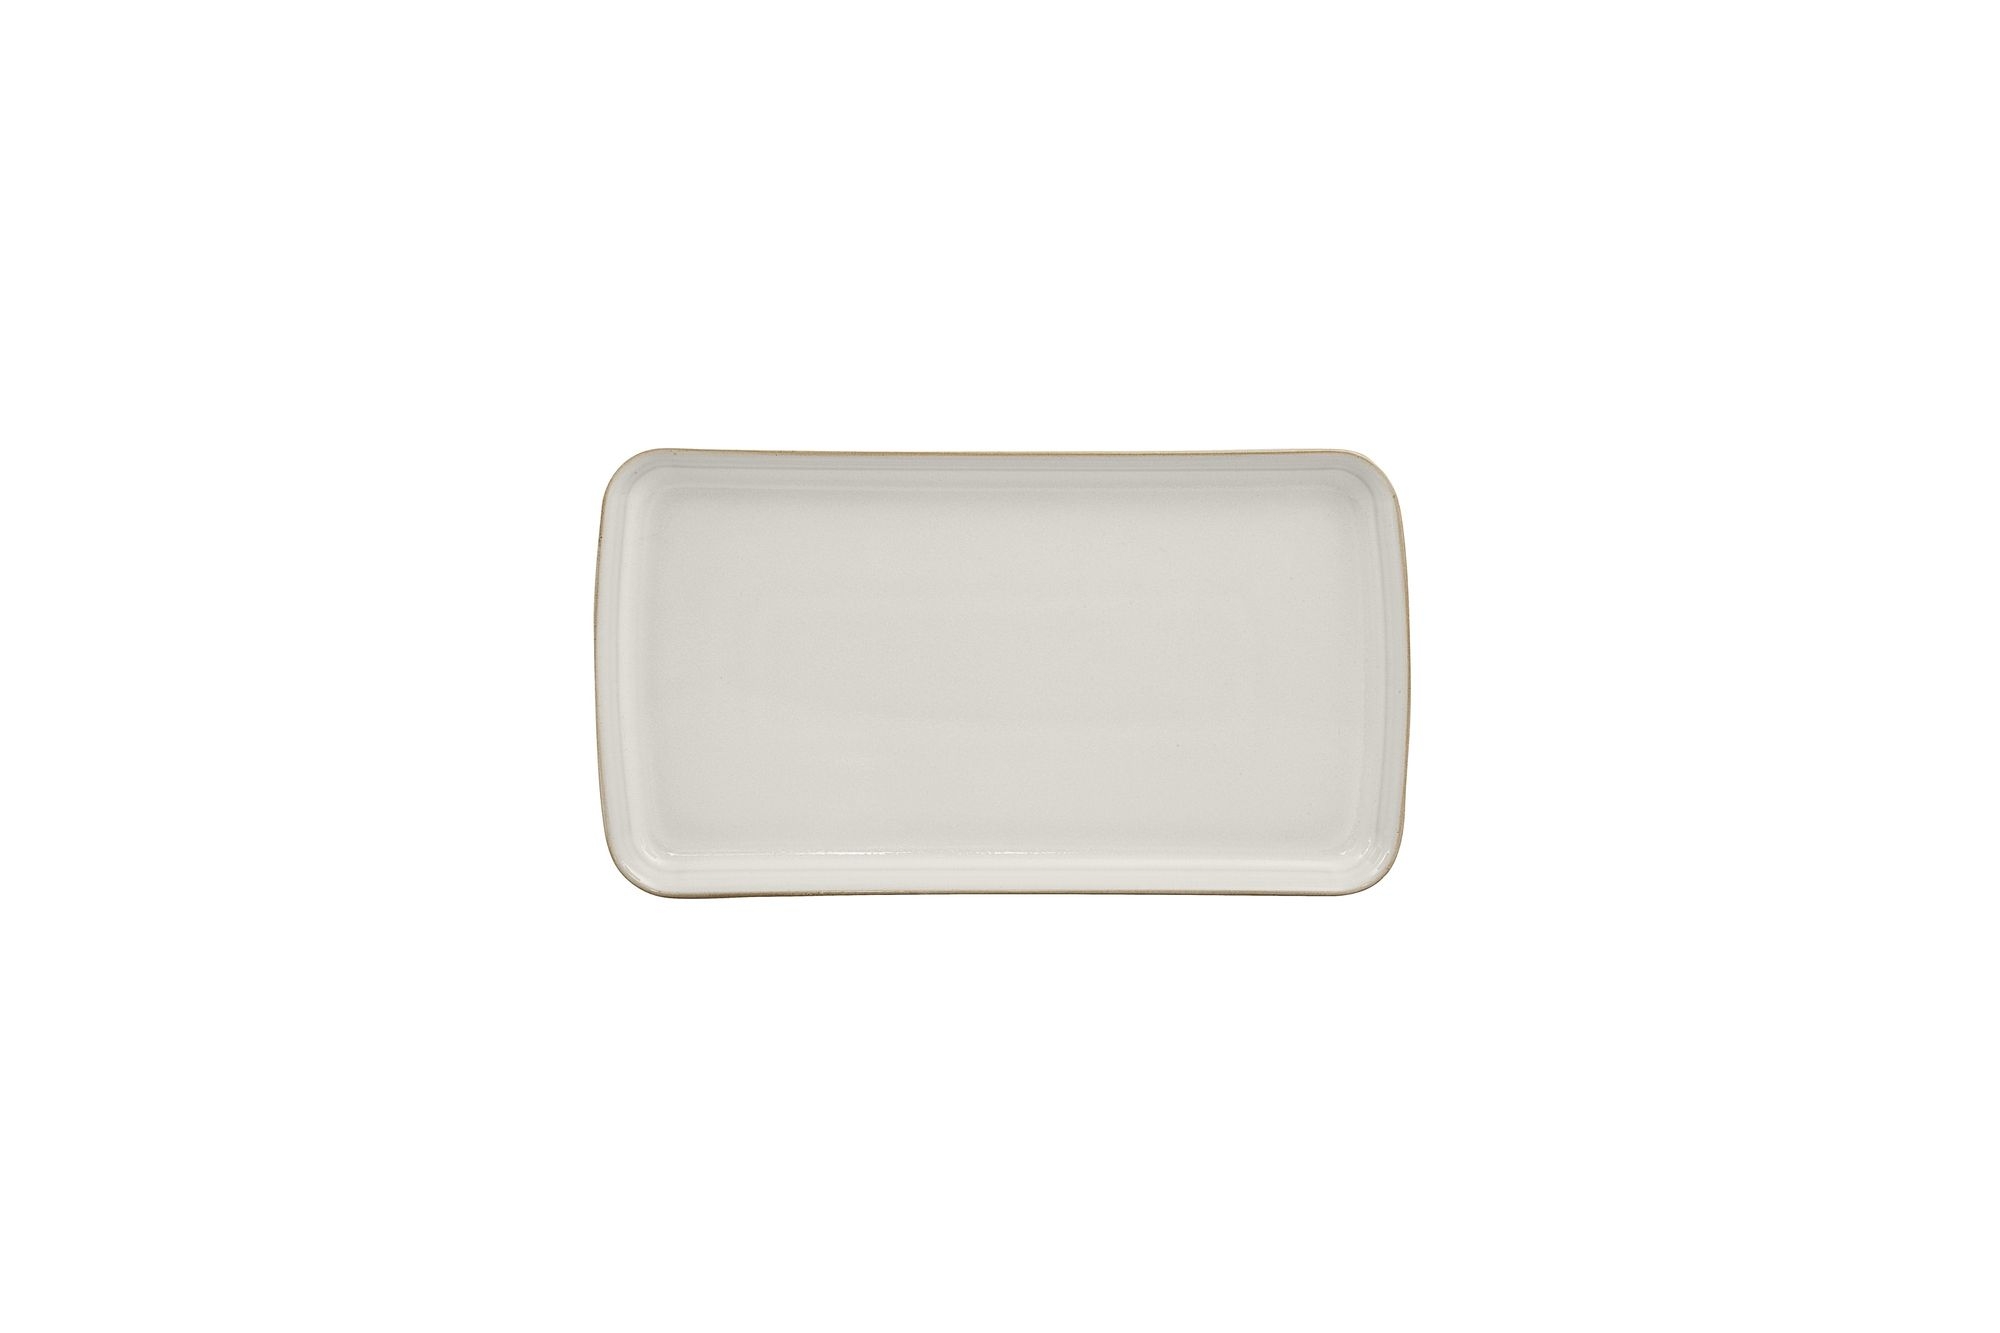 Denby Natural Canvas Rectangular Platter 26 x 14.5cm thumb 1